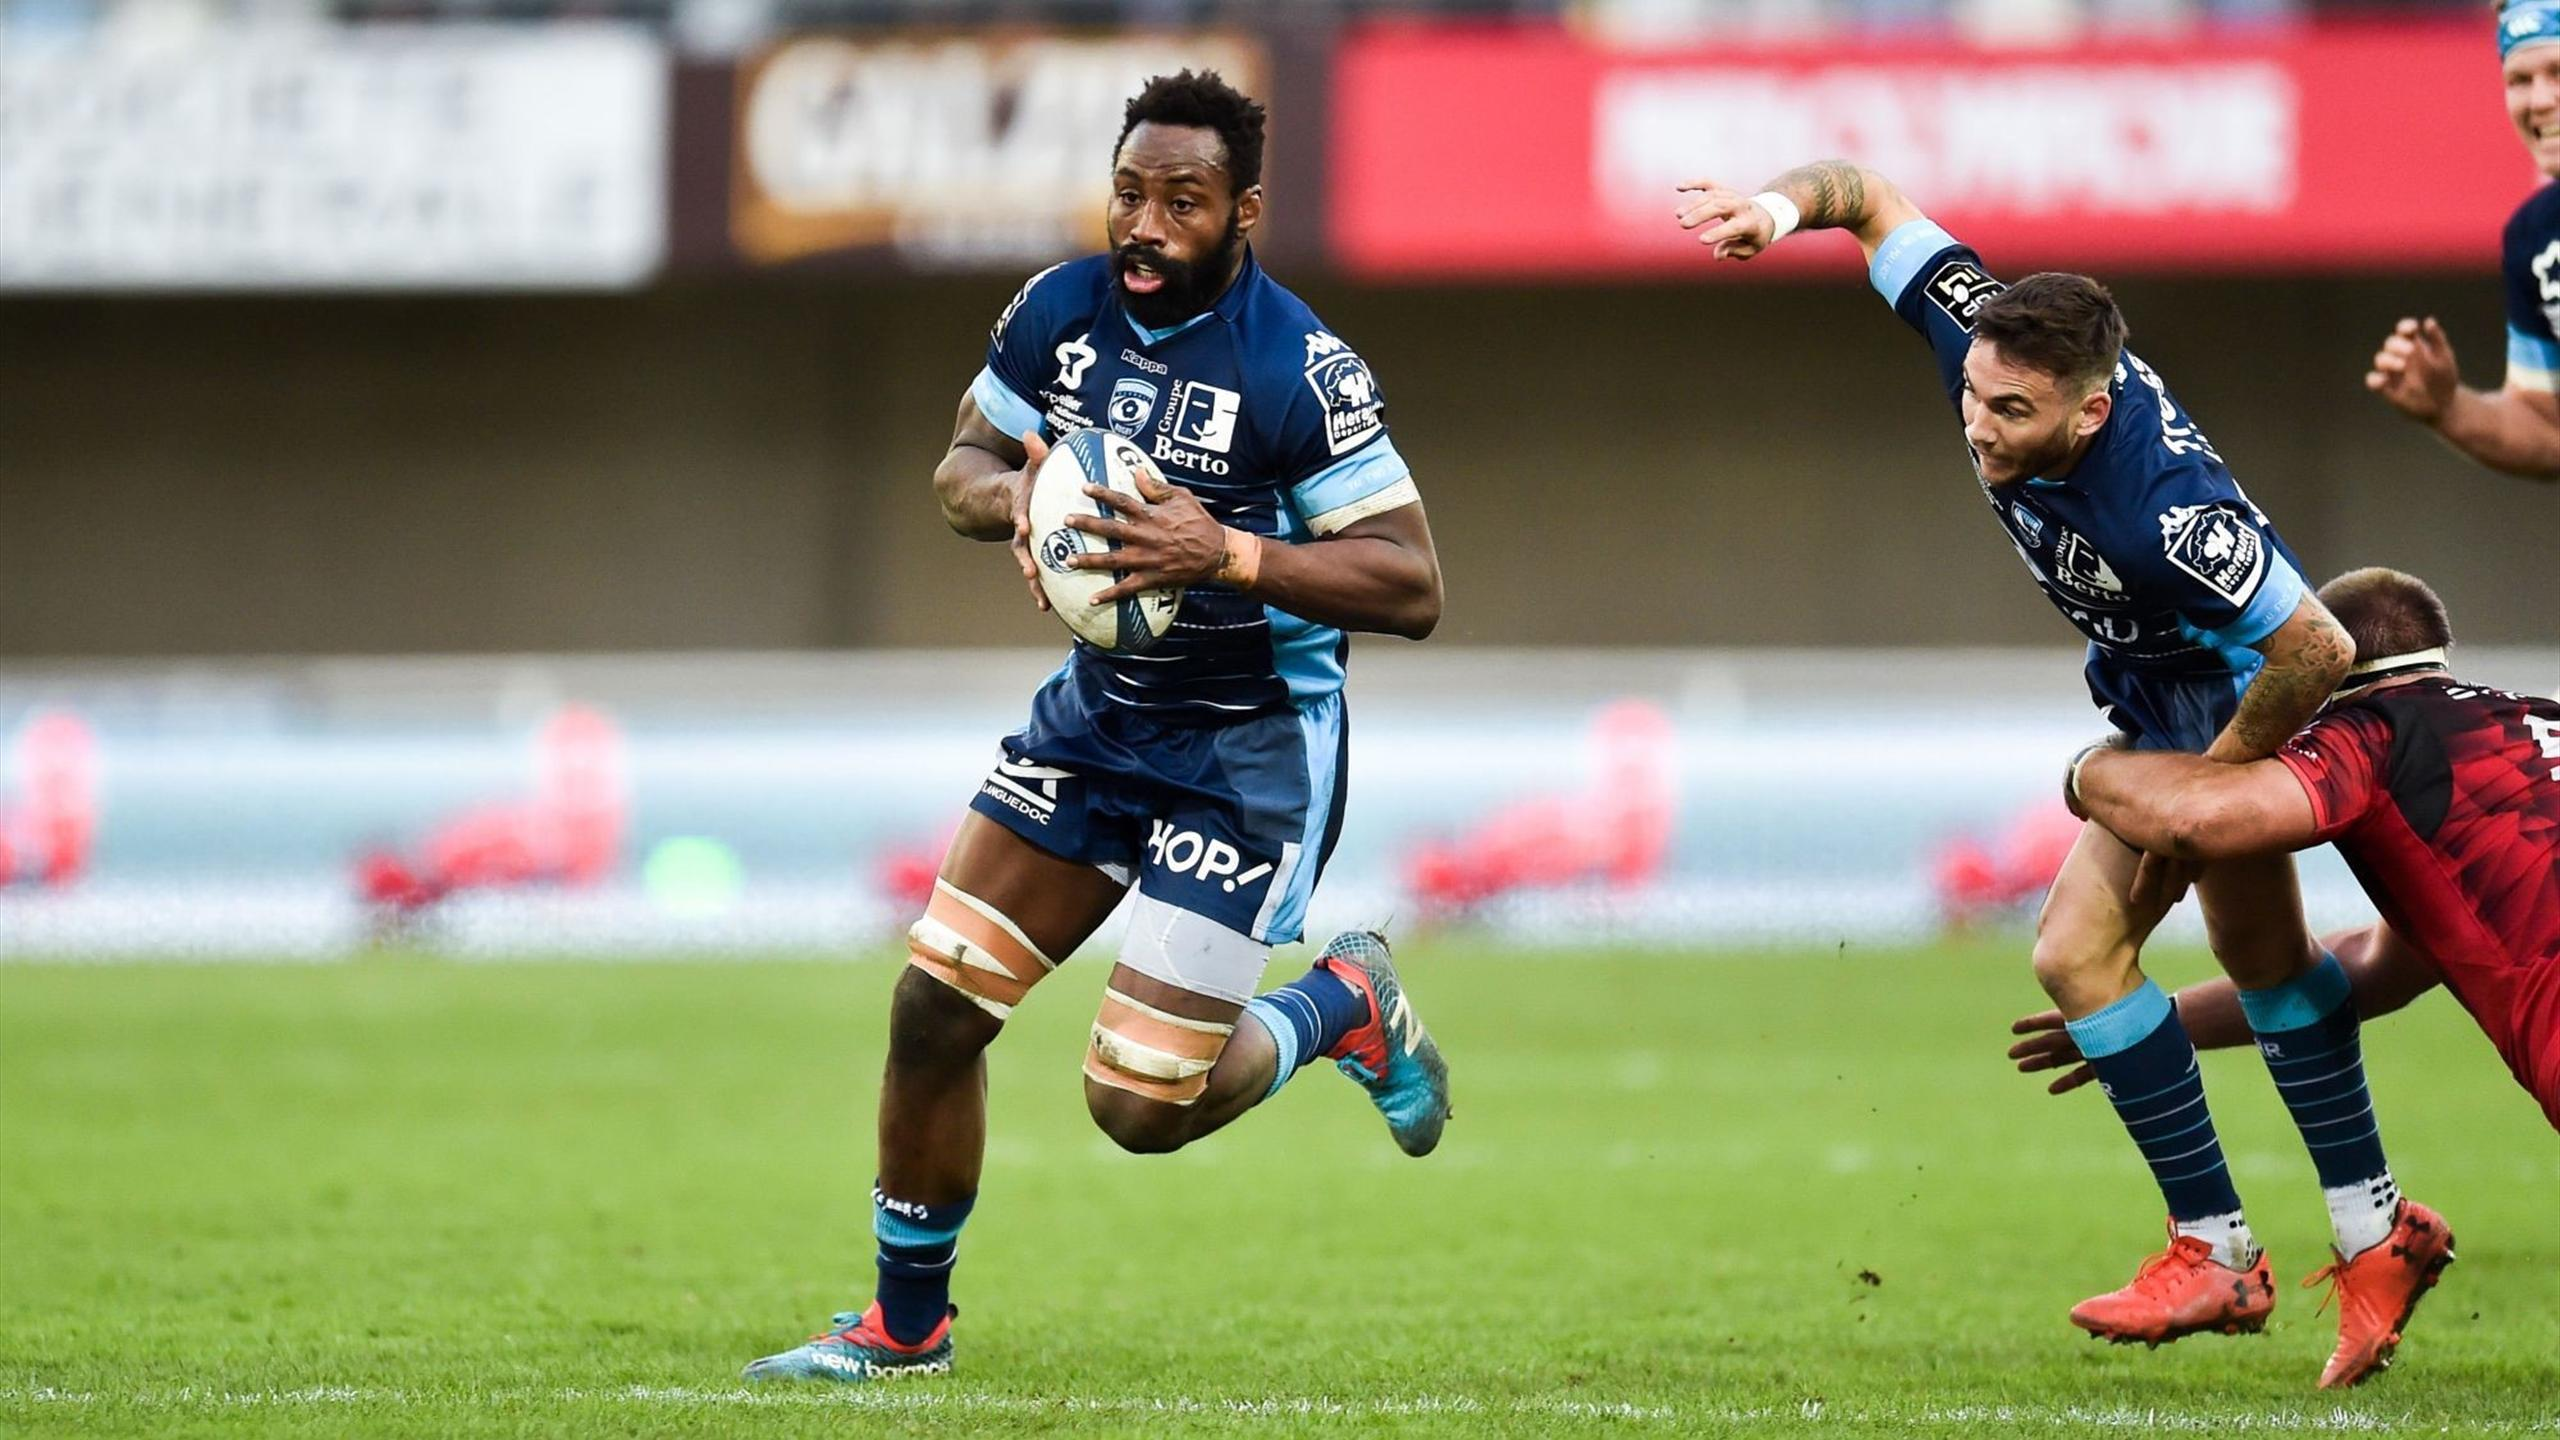 Montpellier Rugby Calendrier.Champions Cup Fulgence Ouedraogo Montpellier Il Faut